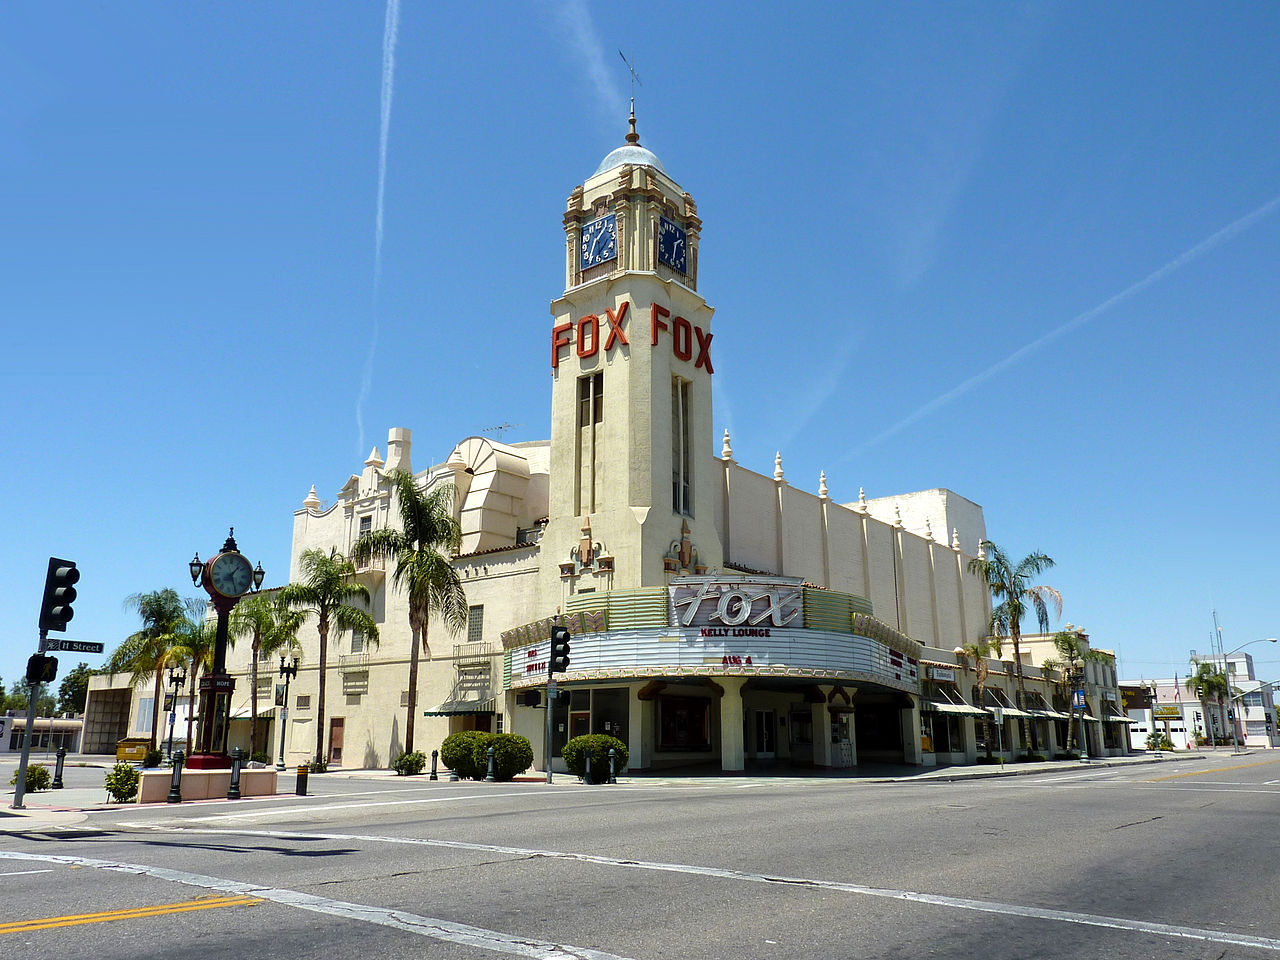 Best Historical Place to Visit in Bakersfield-The Fox Theatre